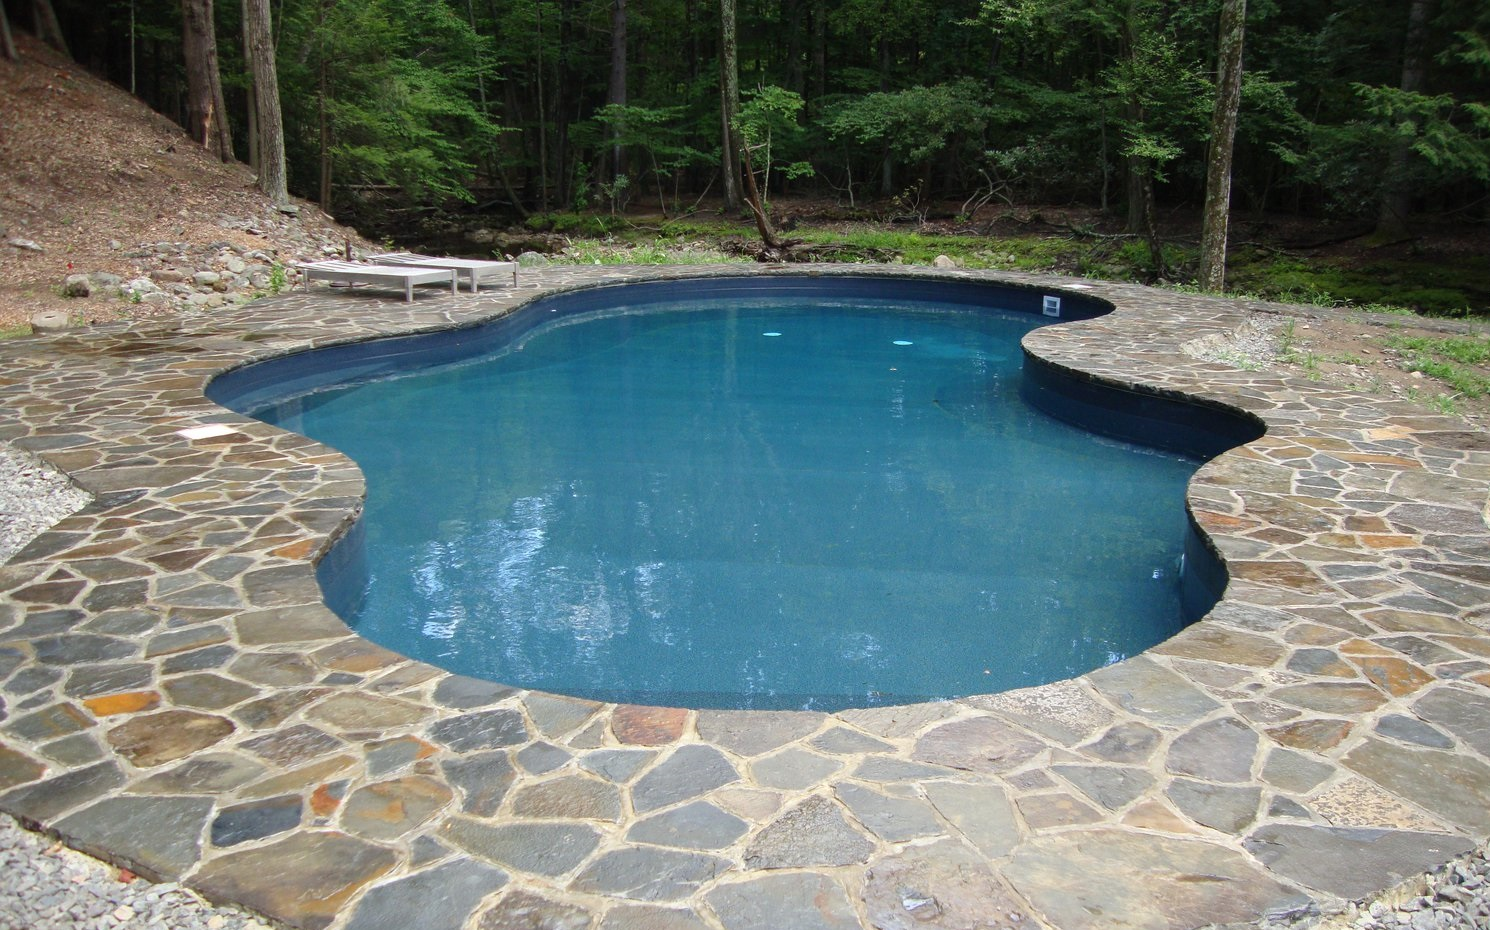 50 backyard swimming pool ideas ultimate home ideas for Poolside ideas